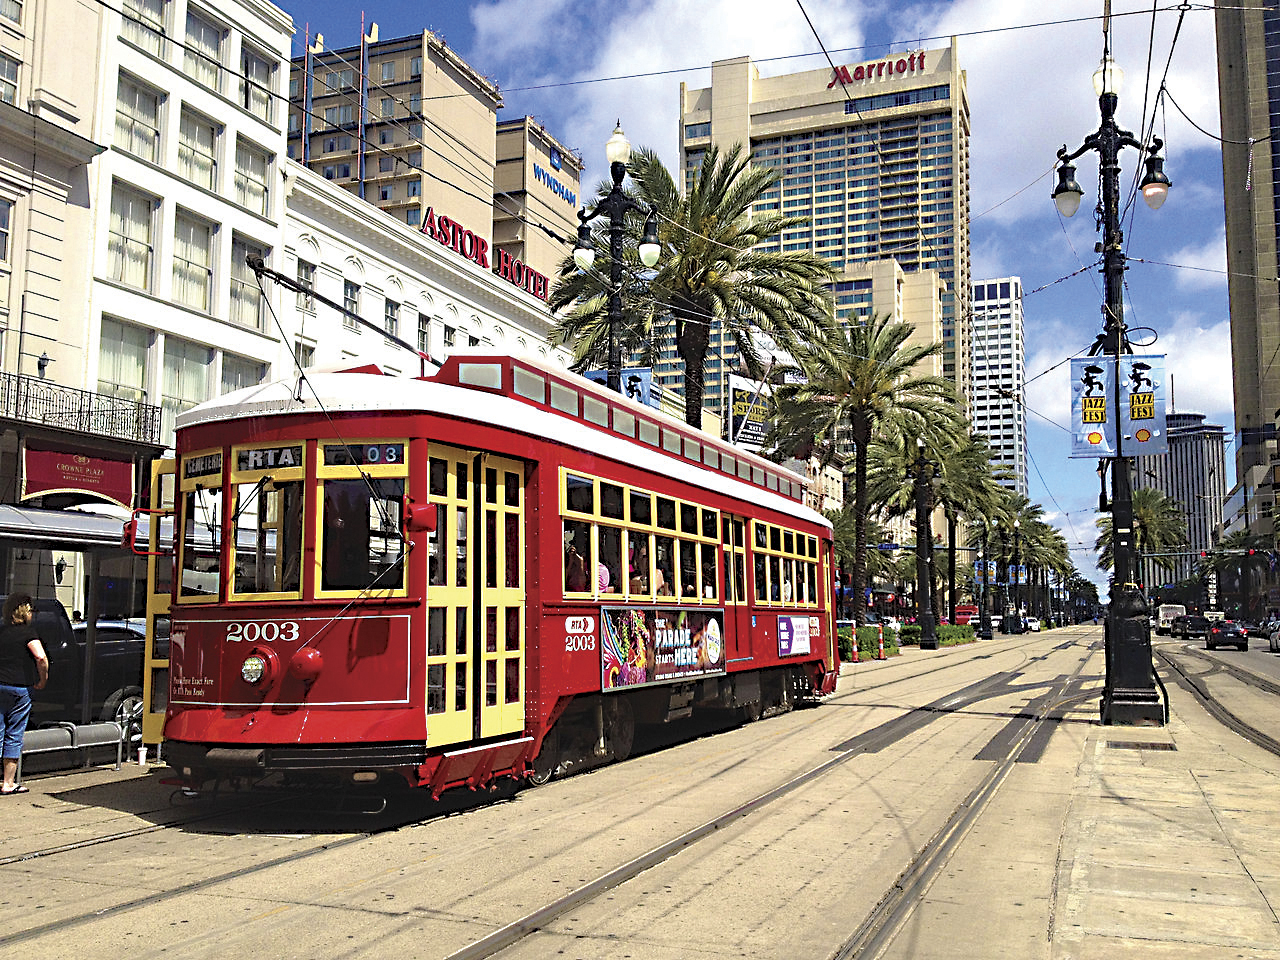 The Easiest Thing About the Big Easy: Moving Here